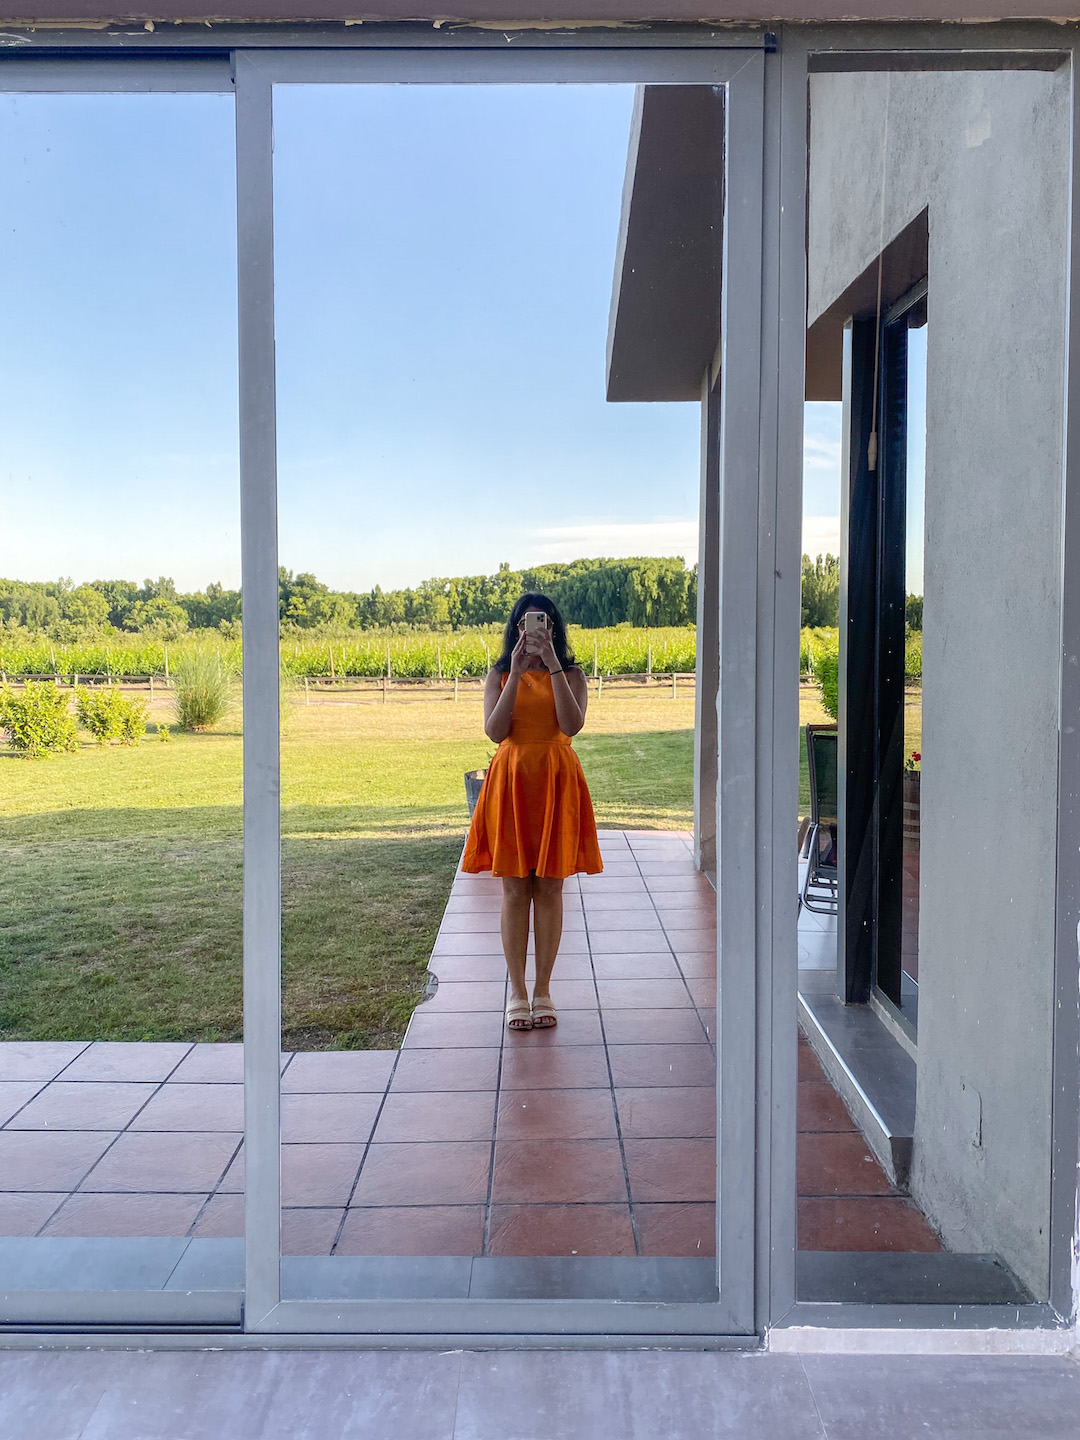 Her_Travel Edit Mendoza Airbnb Exterior